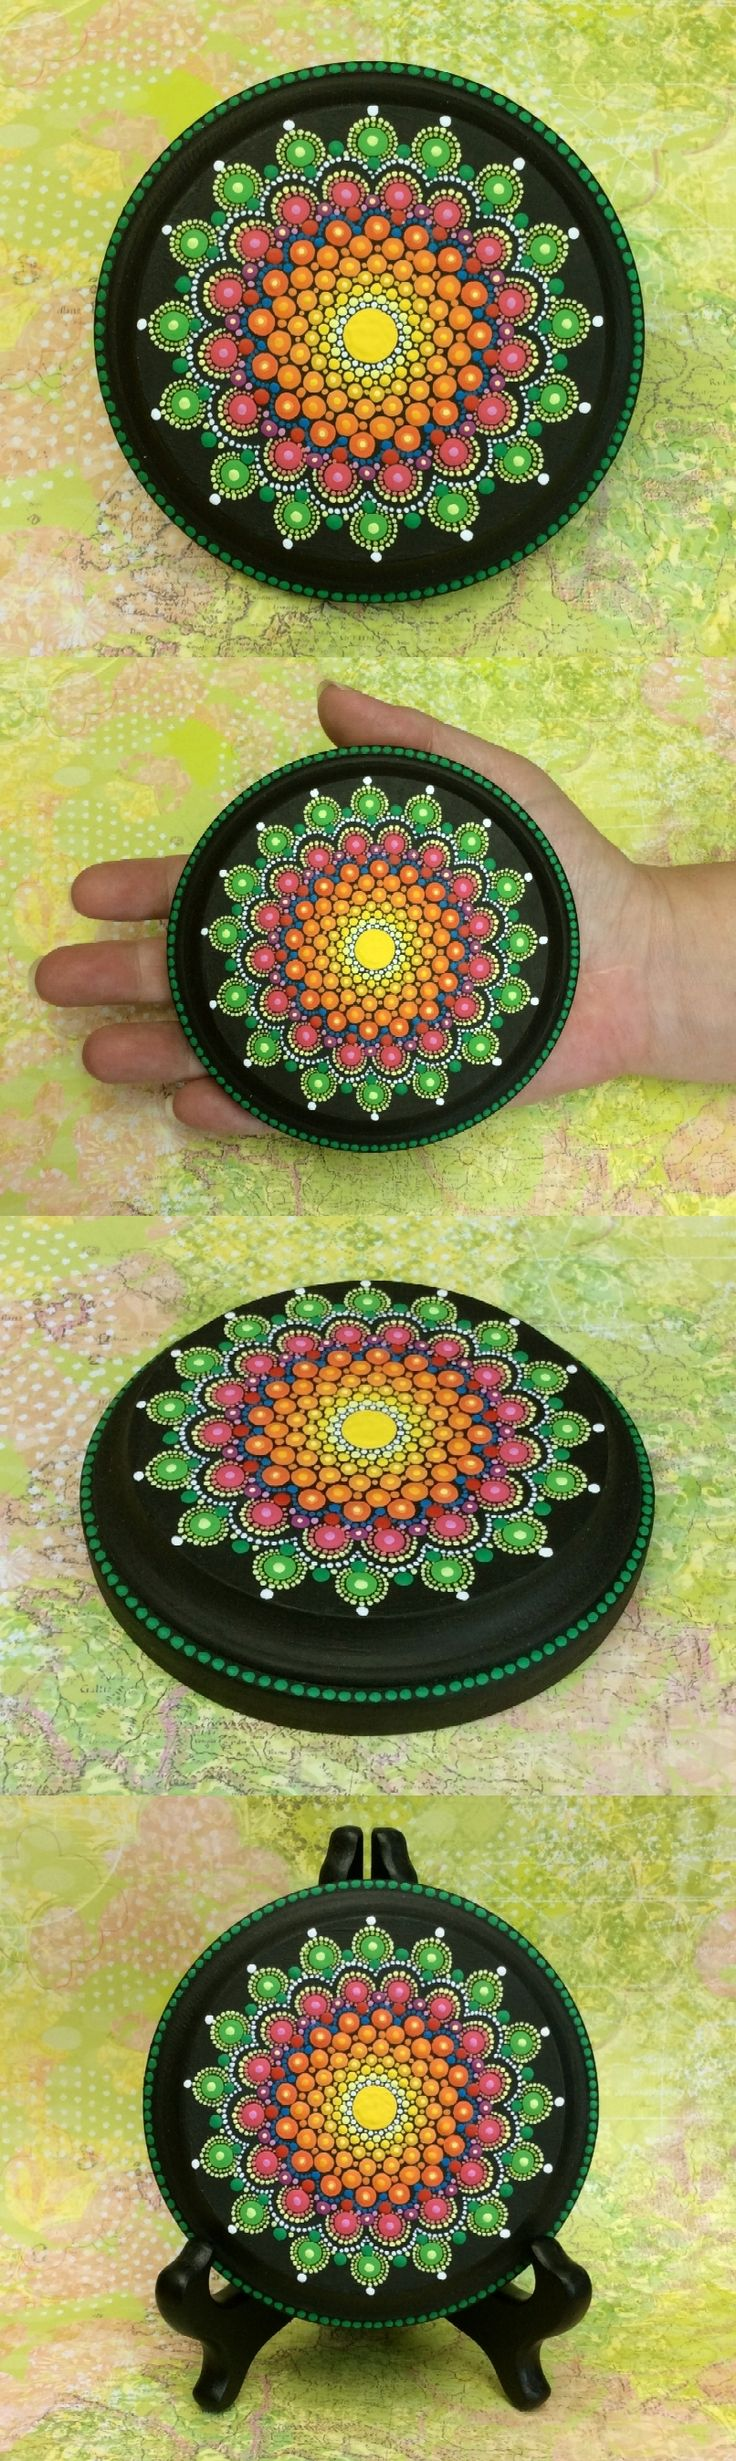 """Mandala Wood Disc (Large) by Kimberly Vallee: Hand painted with acrylic and protected with a matt finish, this hand painted Mandala is 3.5"""" wide on a 3/4"""" thick, 4"""" diam round wooden disc with a nice beveled edge.  No Prints, No Laminations, No Mass Production. It is one of a kind."""